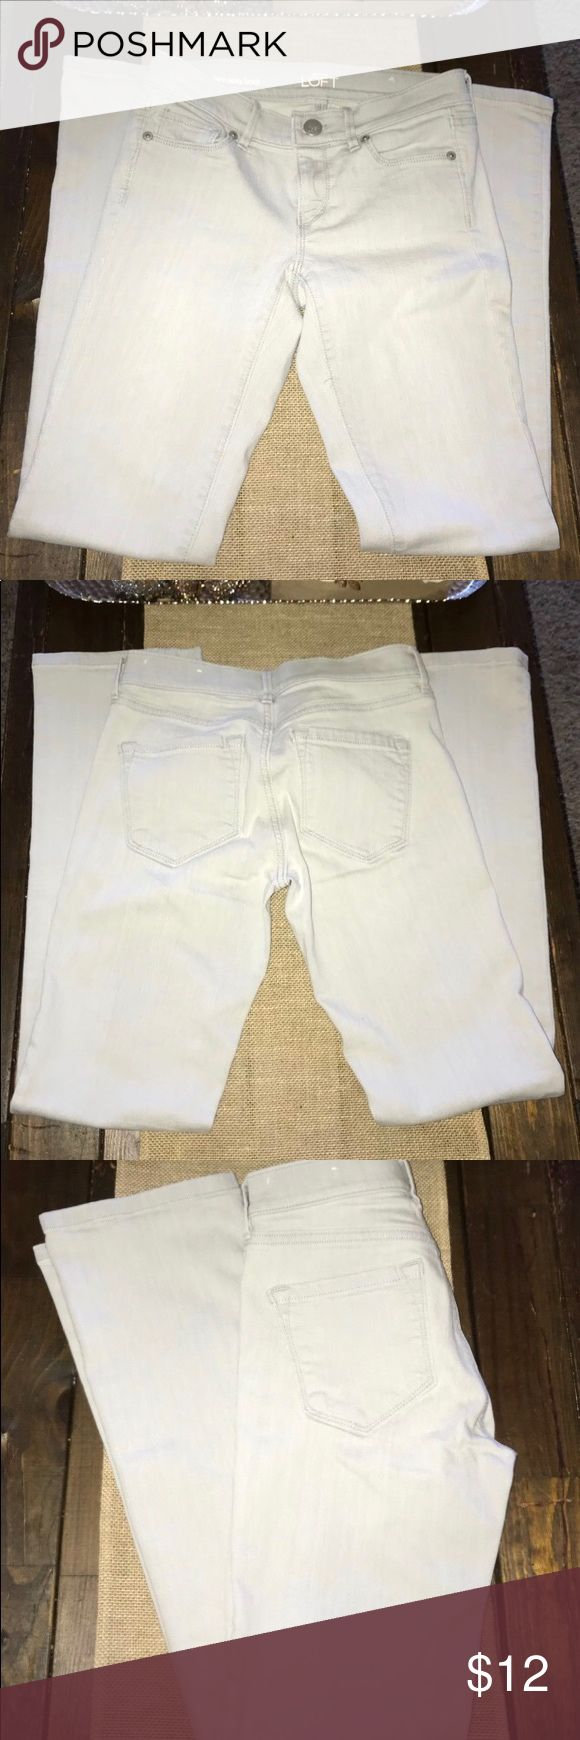 loft pants Lady's Jeans In very good condition color light gray, size 26p, great to complete your casual look. Like new,smoke free, no stains, no holes LOFT Jeans Straight Leg